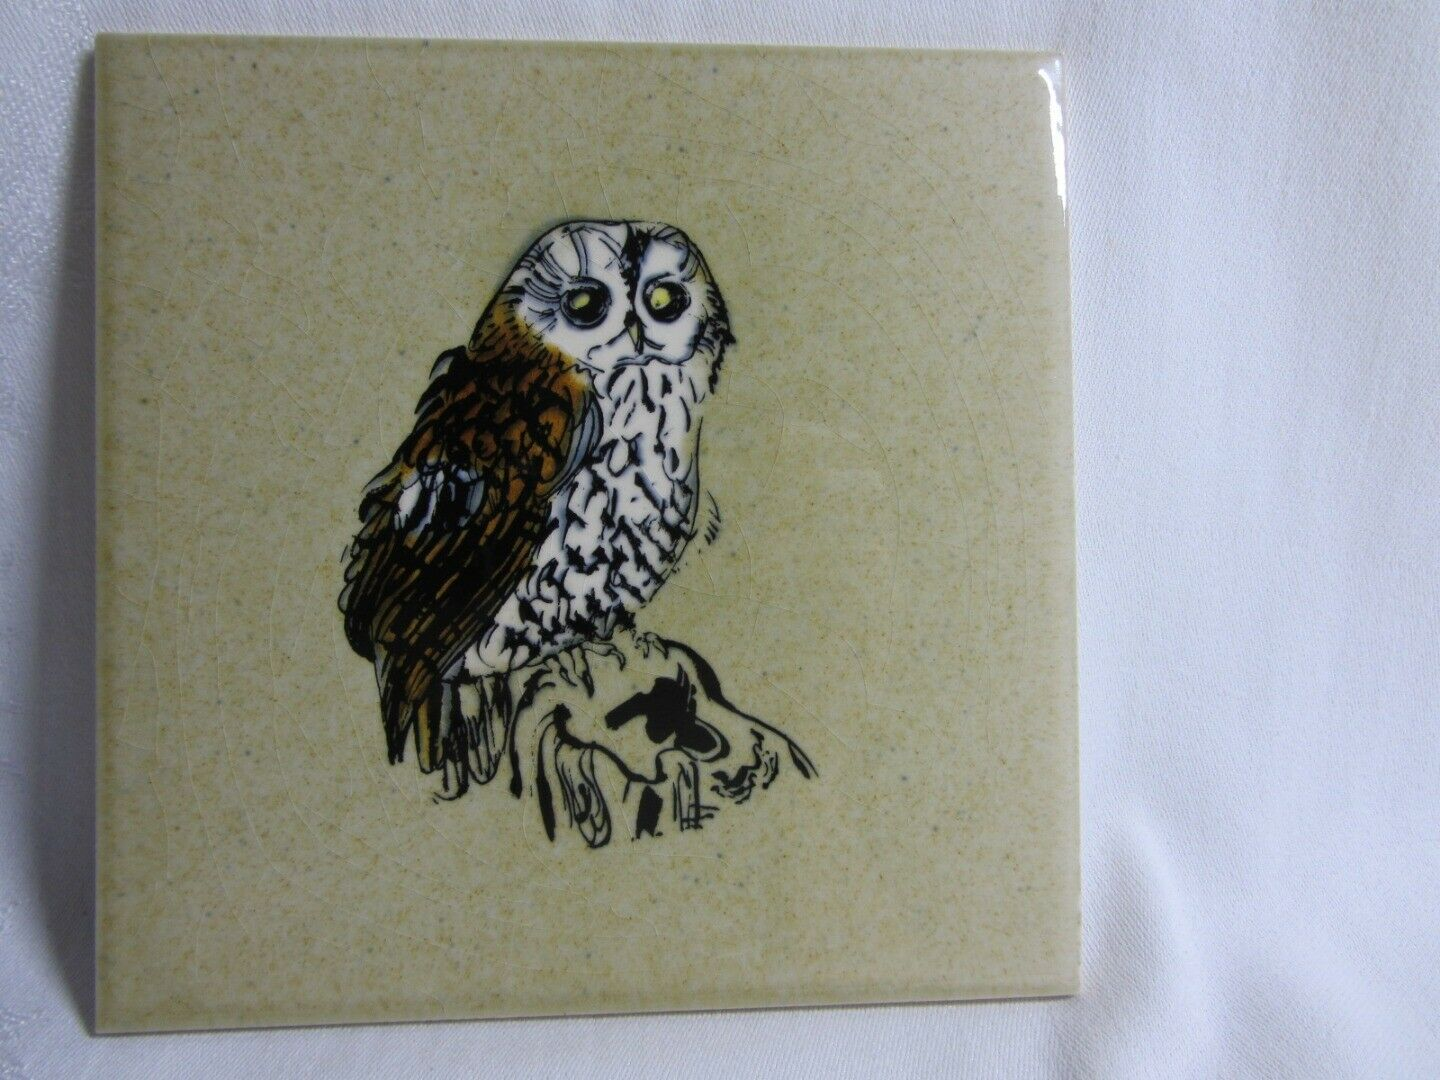 Vtg 60s Owl Ceramic Tile H&R Johnson Cristal Withersdale England Hand Decorated